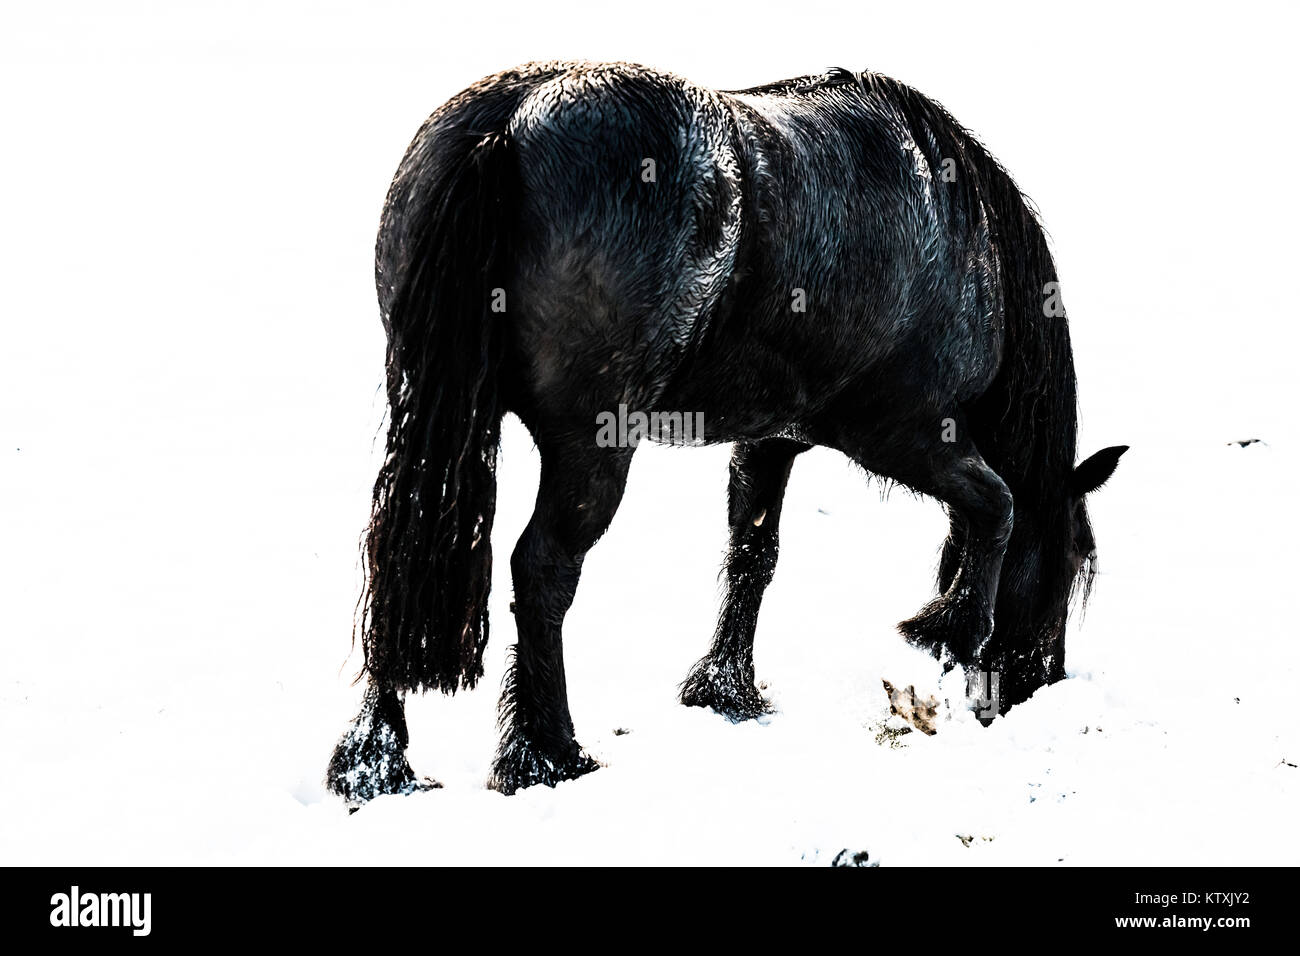 Towford, Jedburgh, Scottish Borders, UK. 26th December 2017. Fell ponies graze amongst deep snow on Boxing Day. Stock Photo